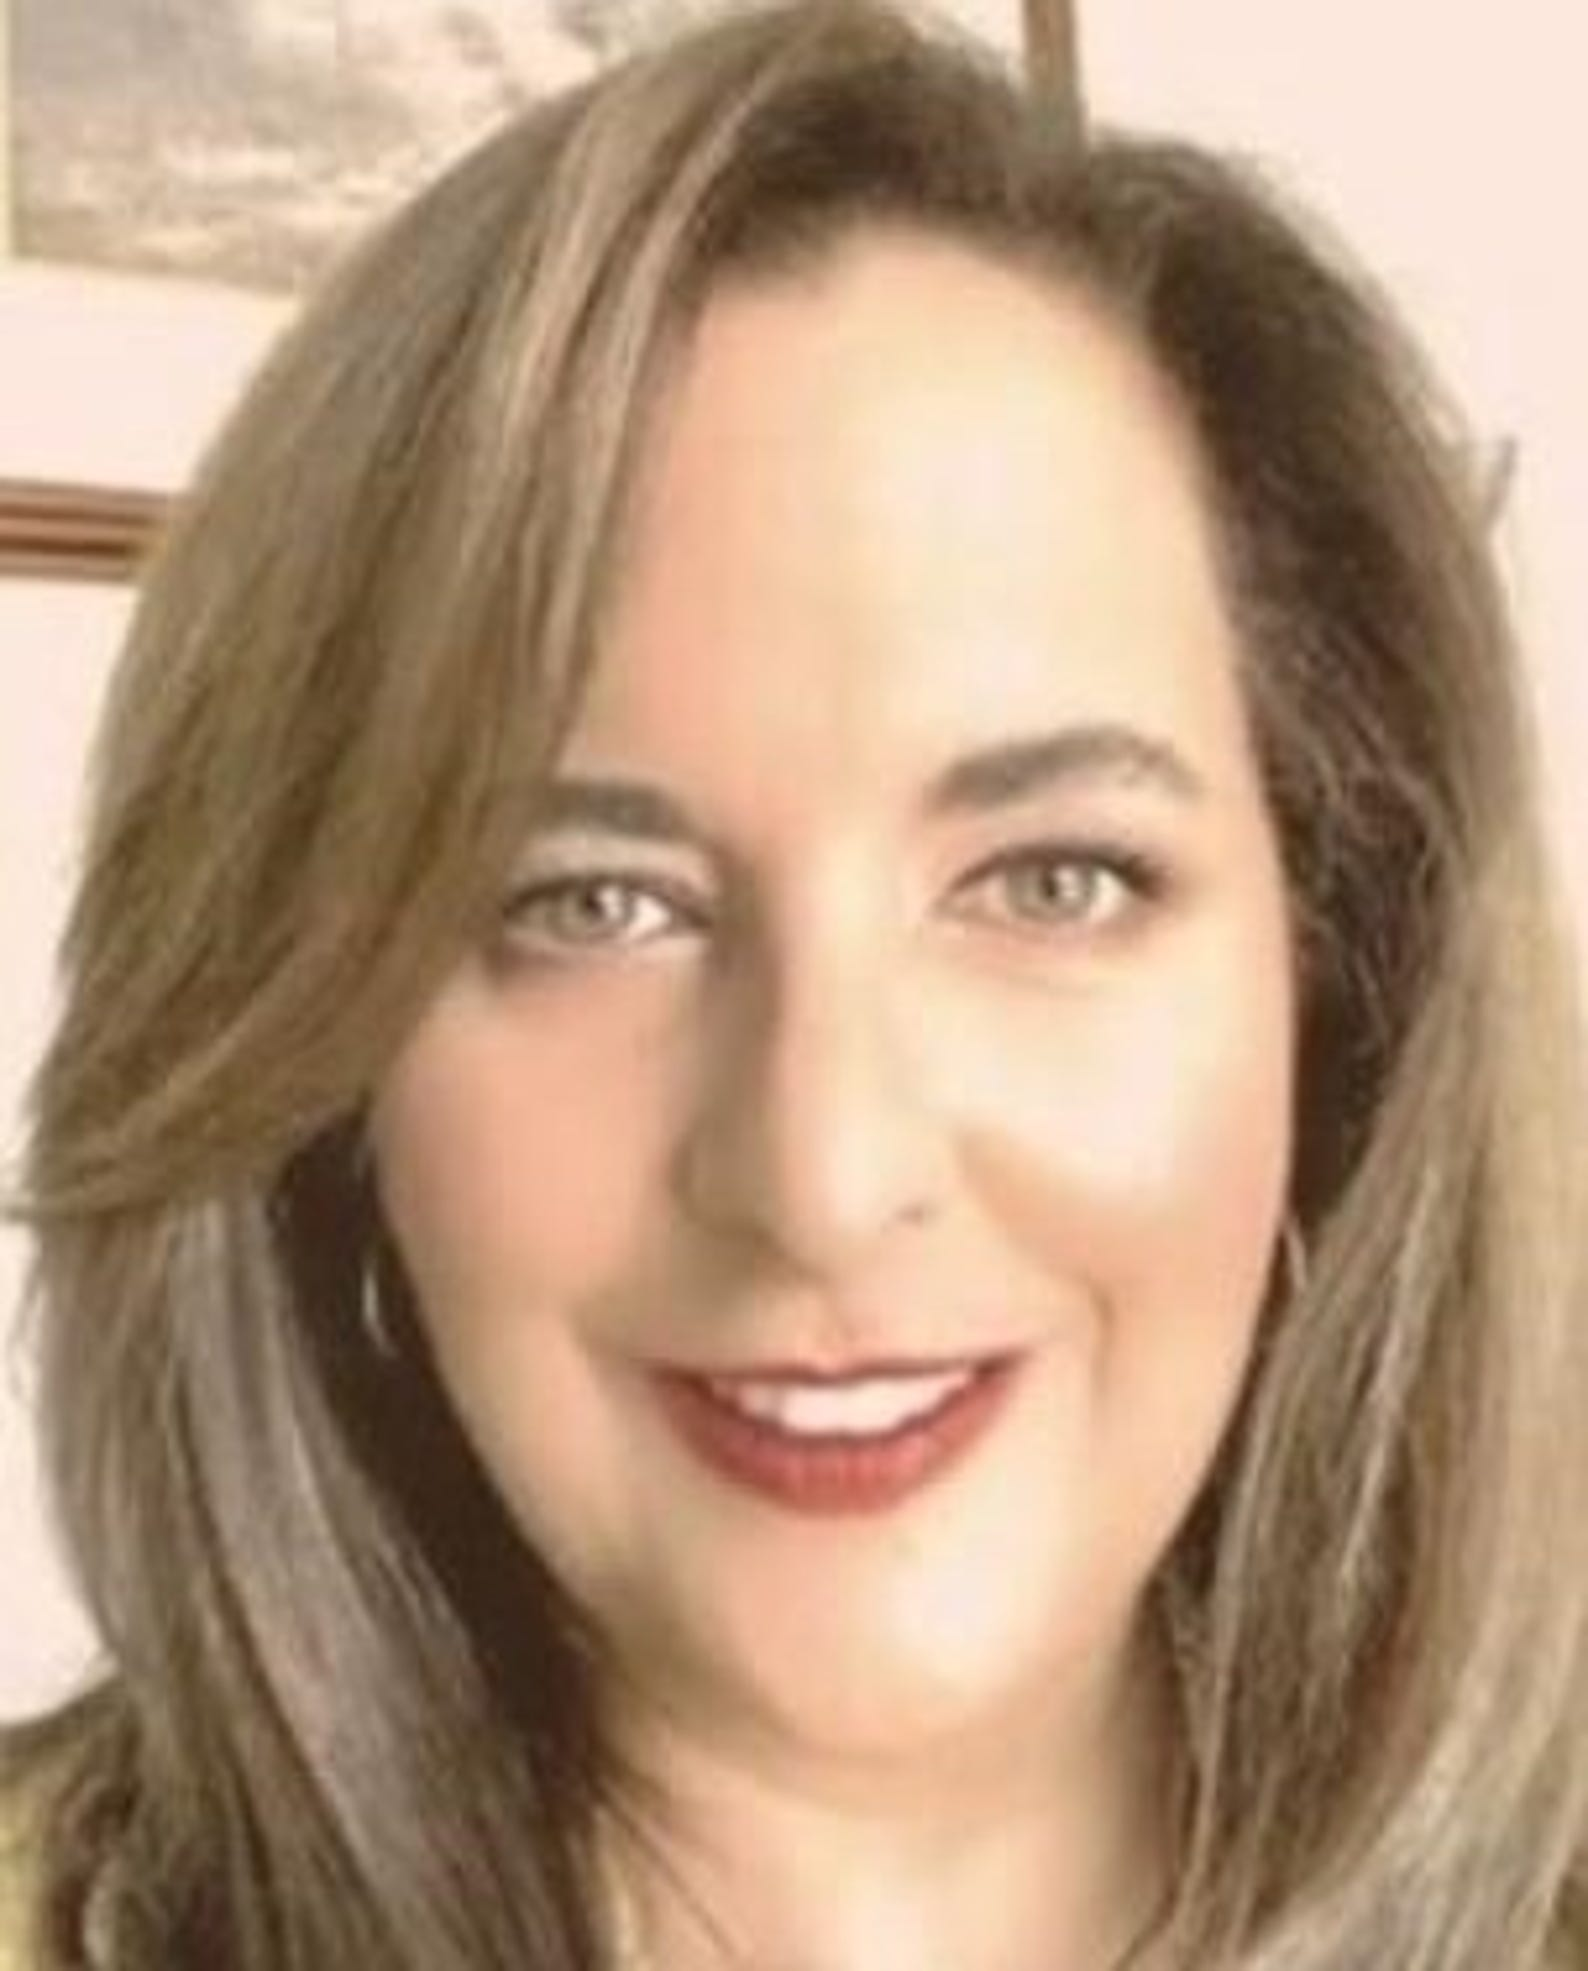 Georgette Garcia-Kaufmann, an assistant attorney general, was killed in a shooting in her home in the Manhattan Heights neighborhood in Central El Paso on Nov. 14, 2020.